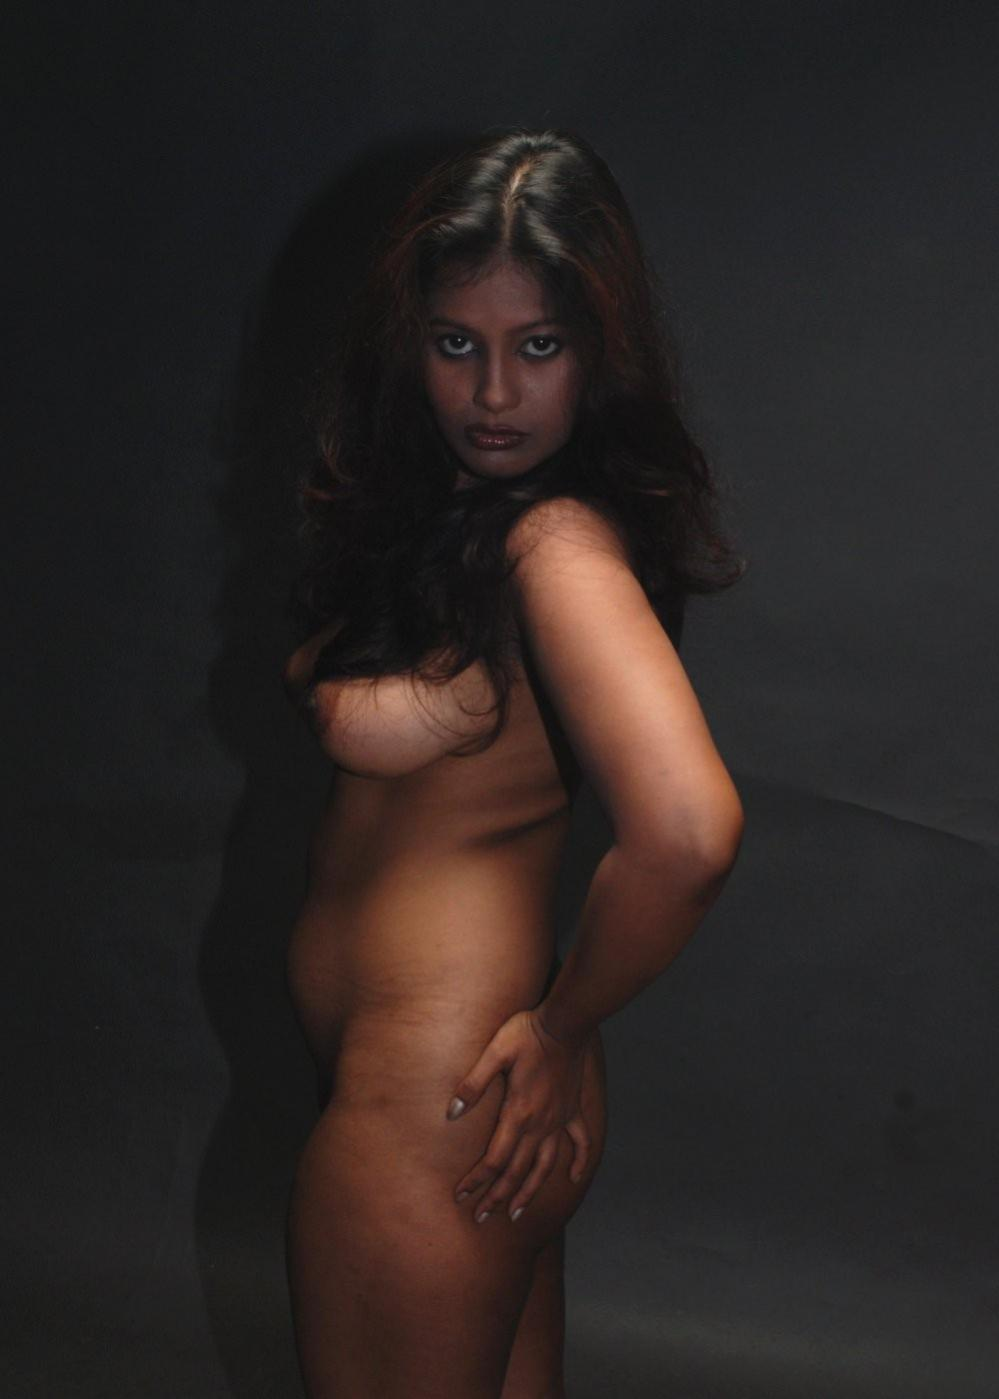 Indian nudes world photos pron tubes